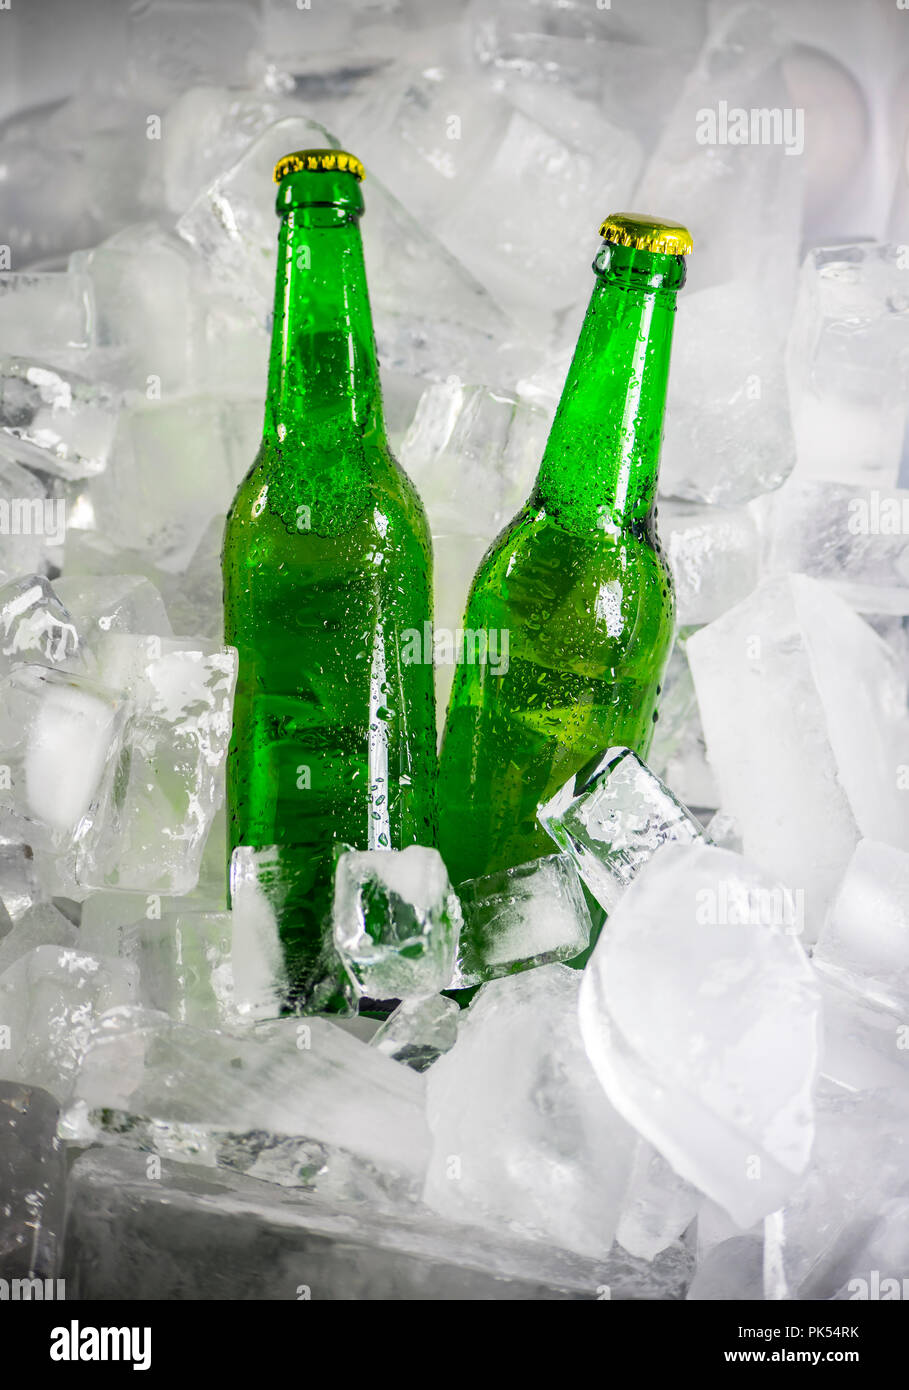 Bottles of beer on ice - Stock Image